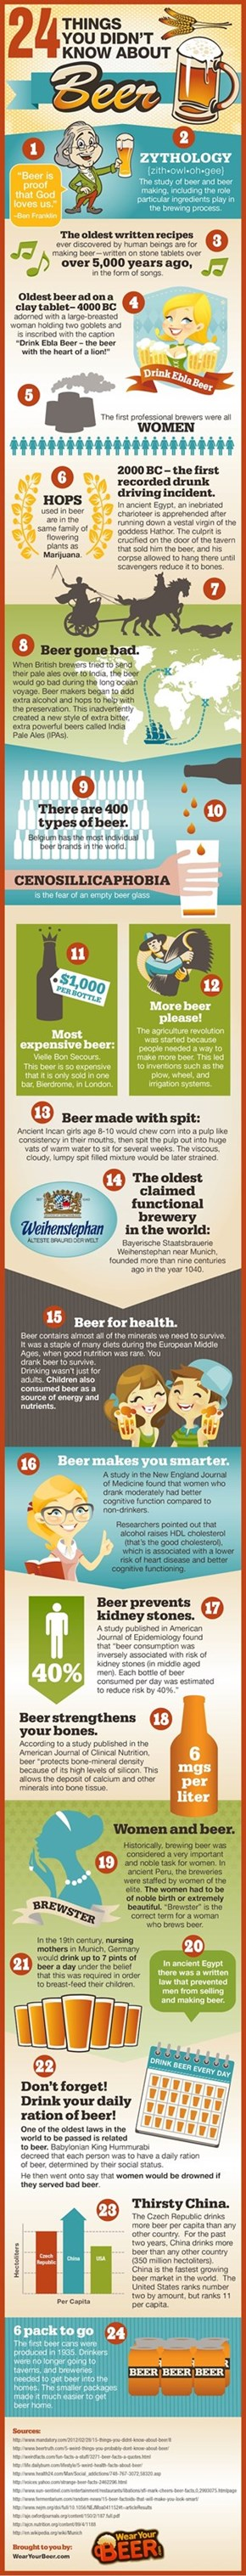 Strange Beer Facts